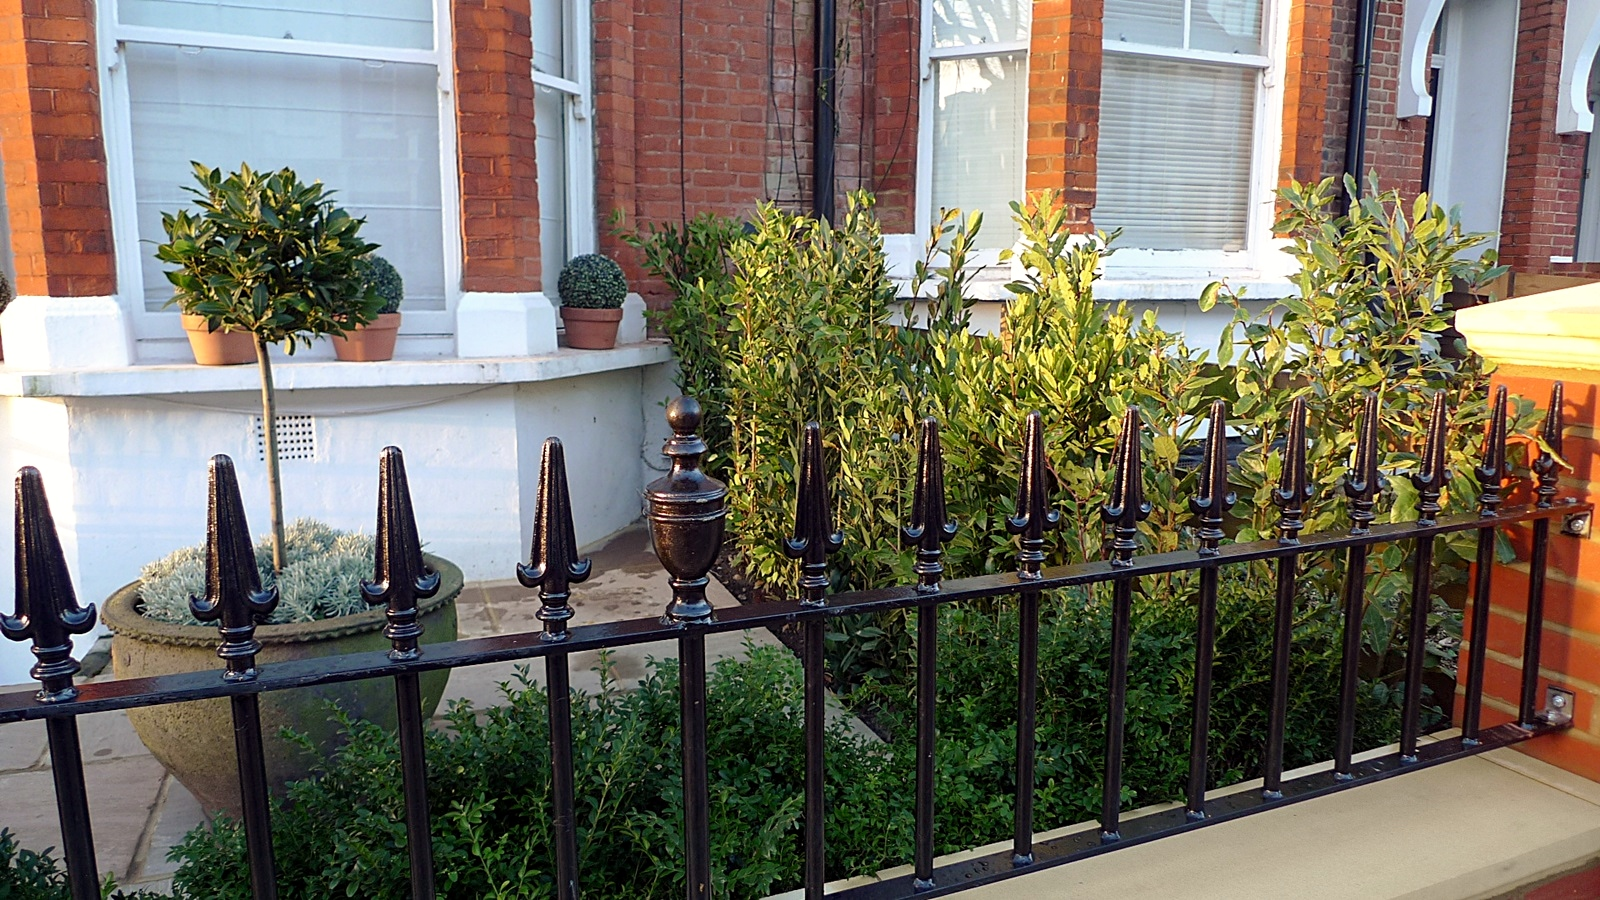 garden ideas london unique front garden ideas london linsey evans victorian best style